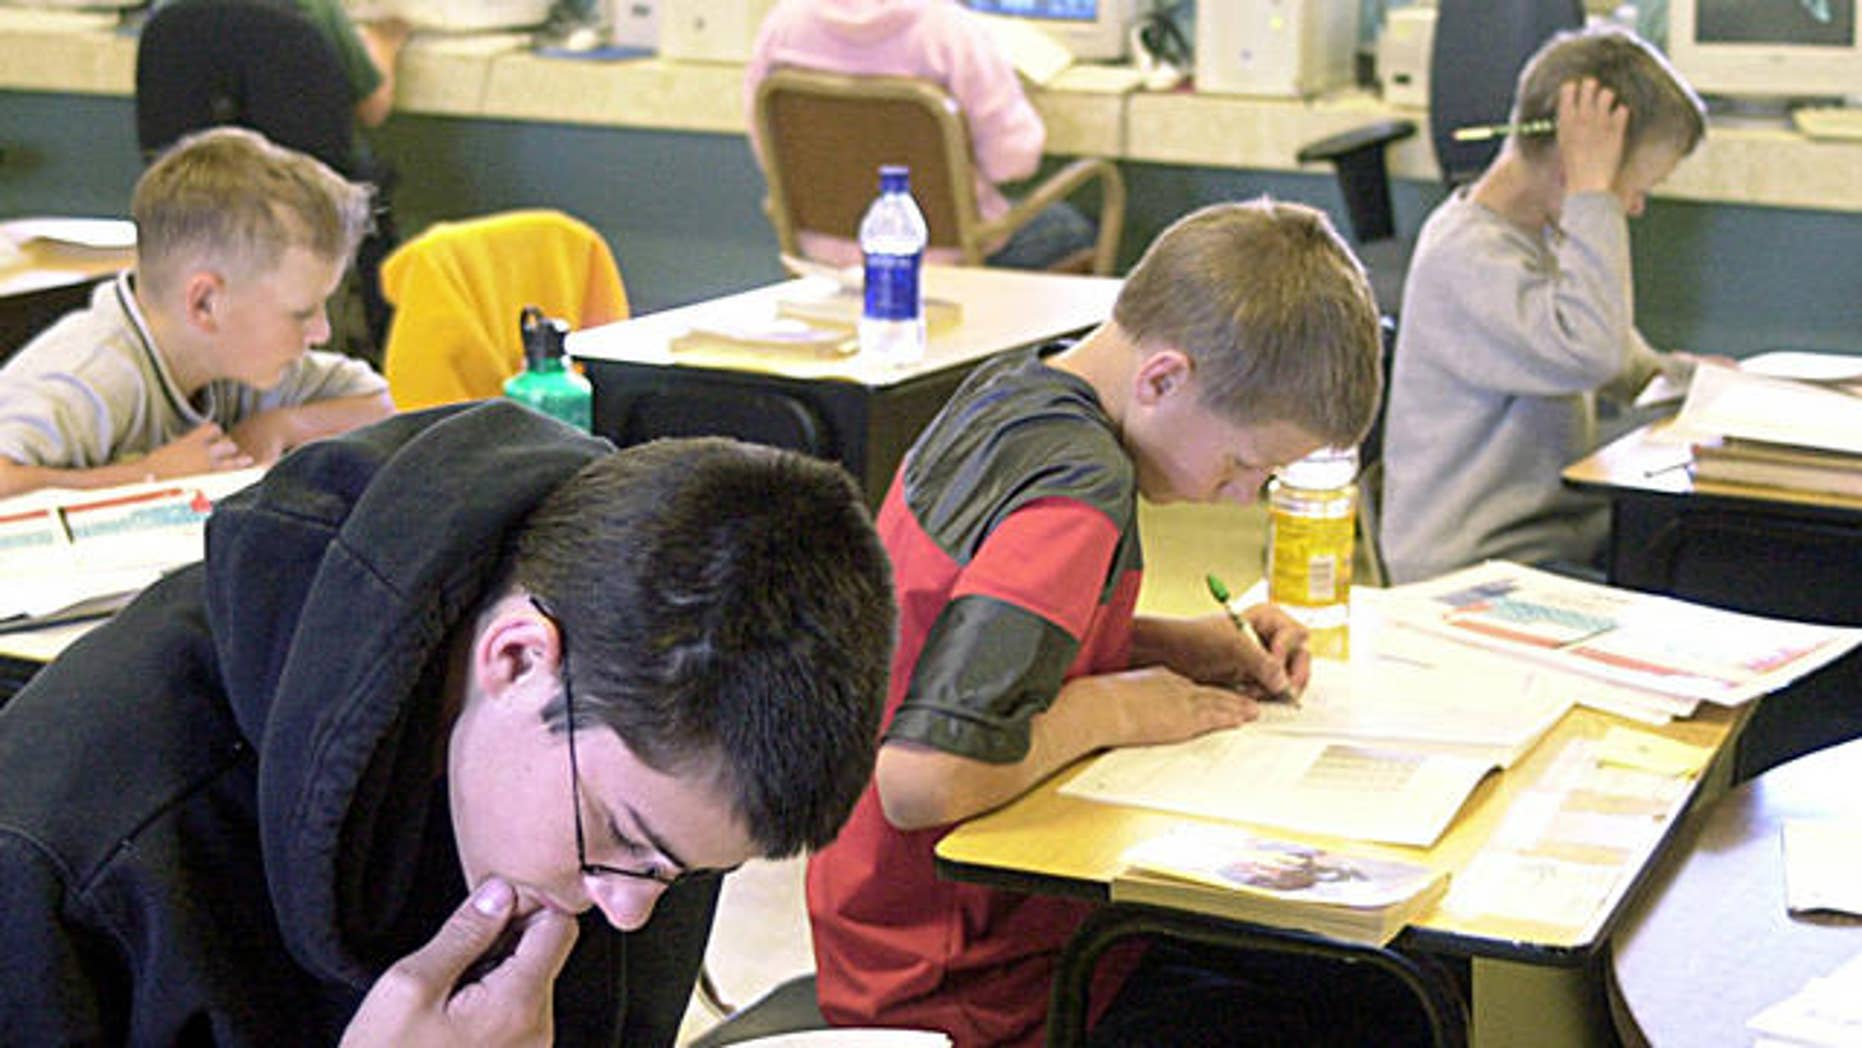 Adhd Diagnoses Why Youngest Kids In >> Adhd Over Diagnosed In Youngest Kids In Class Fox News